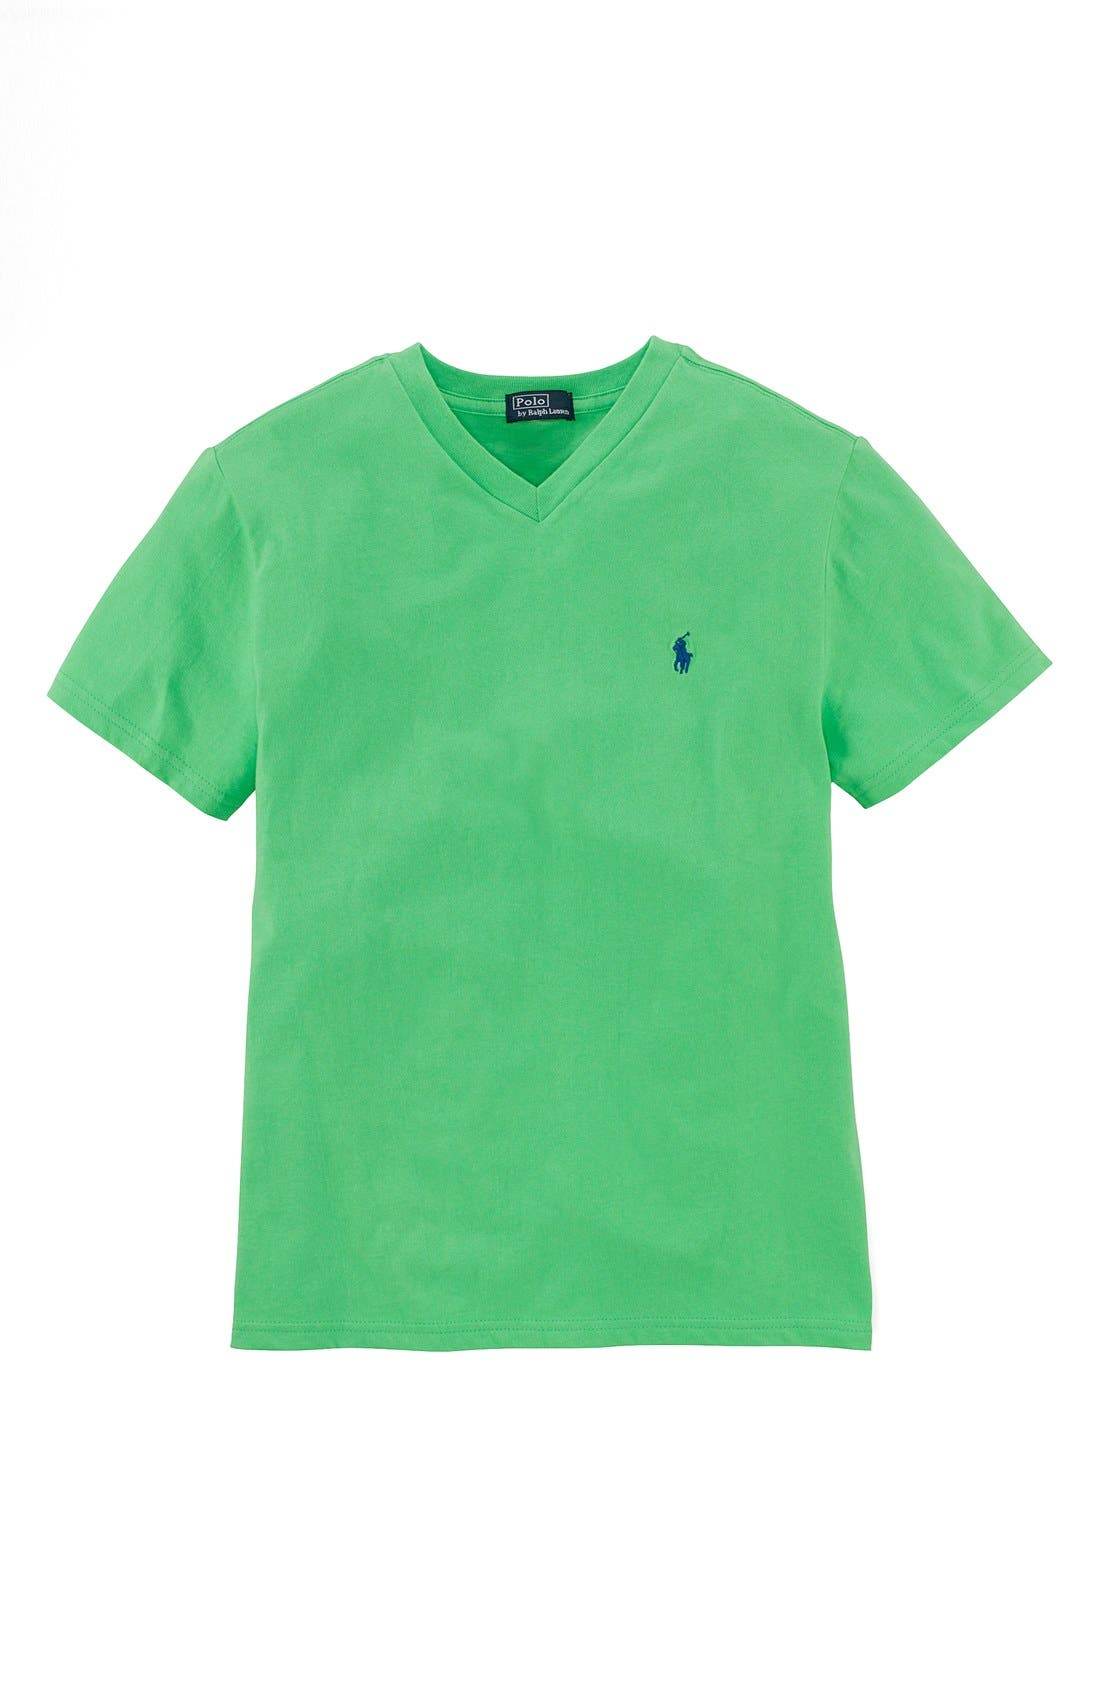 Main Image - Ralph Lauren V-Neck T-Shirt (Big Boys)